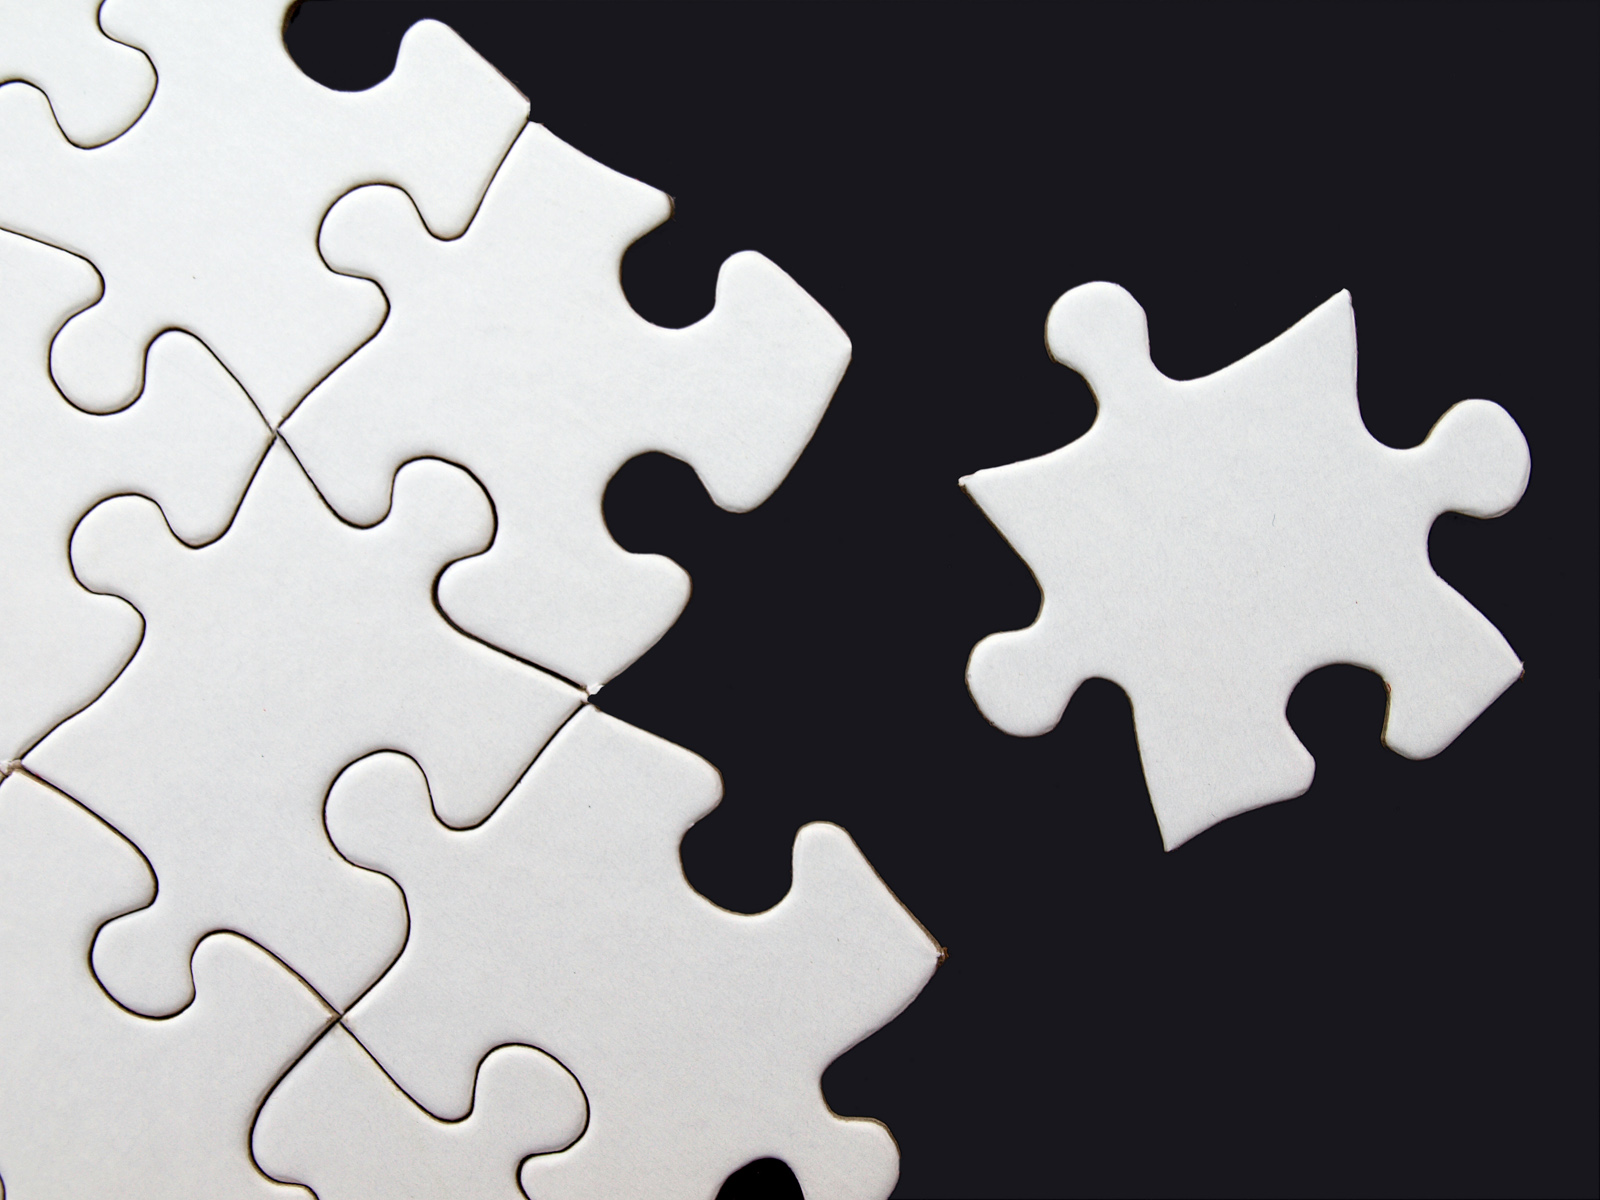 Blank puzzle PPT Backgrounds